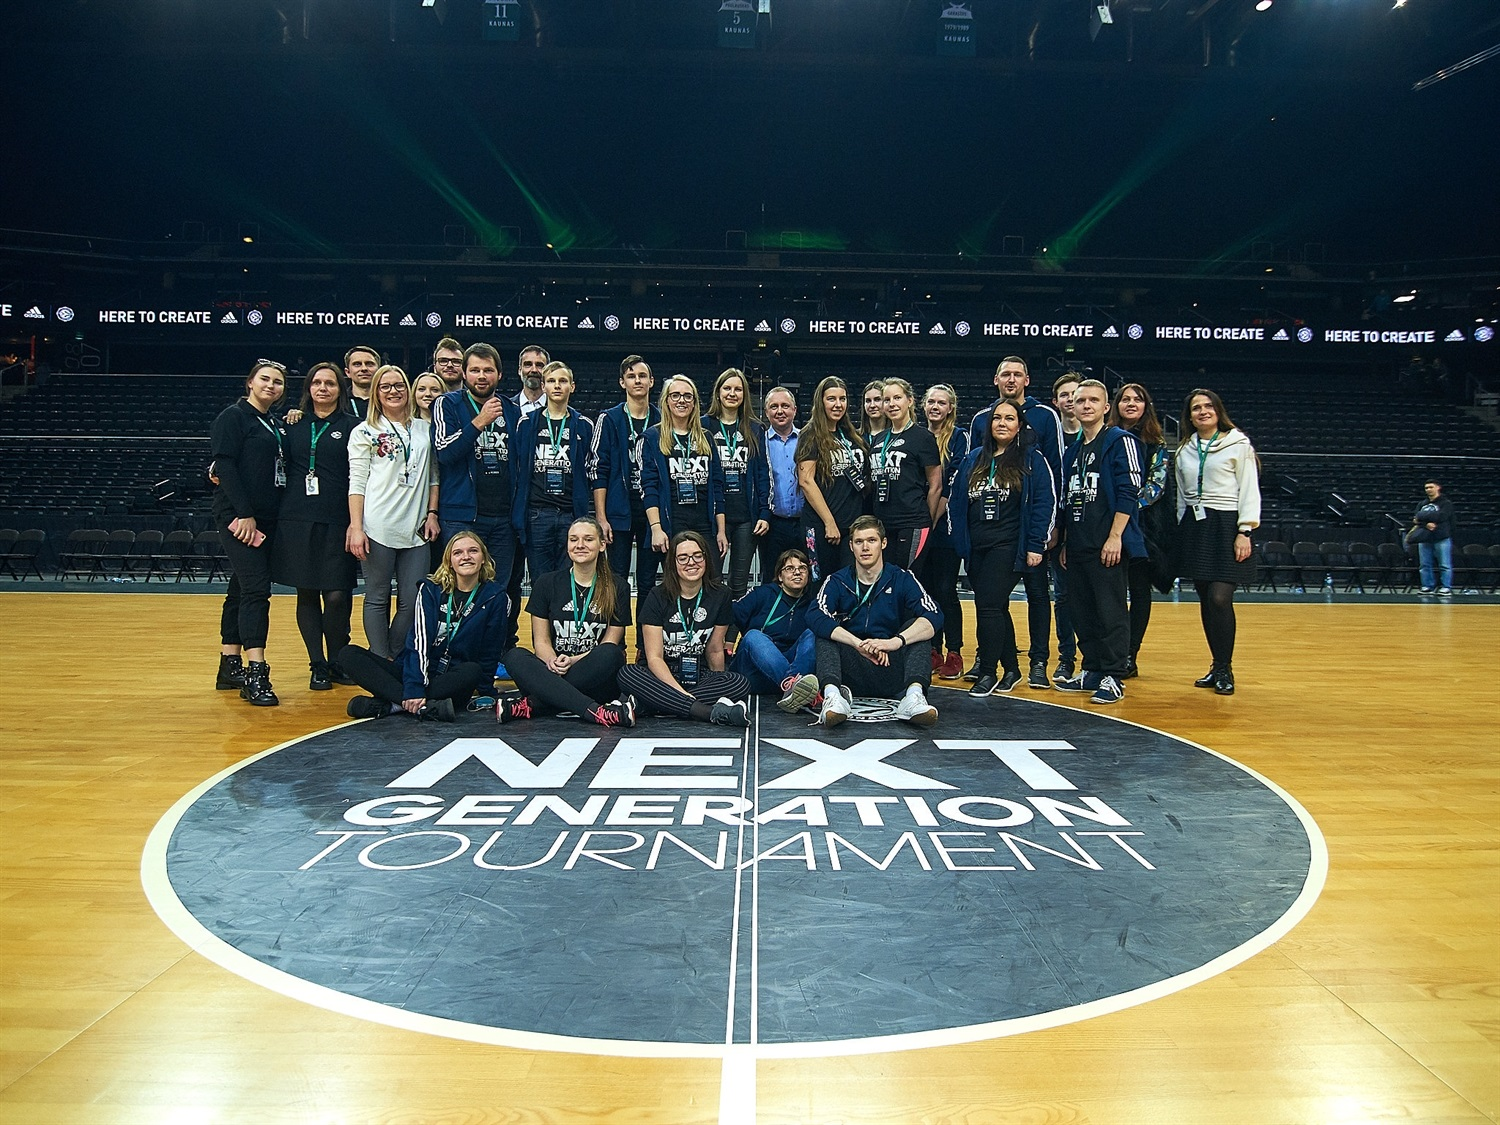 Next Generation Tournament, ANGT Kaunas 2019 (photo Zalgiris) - JT18